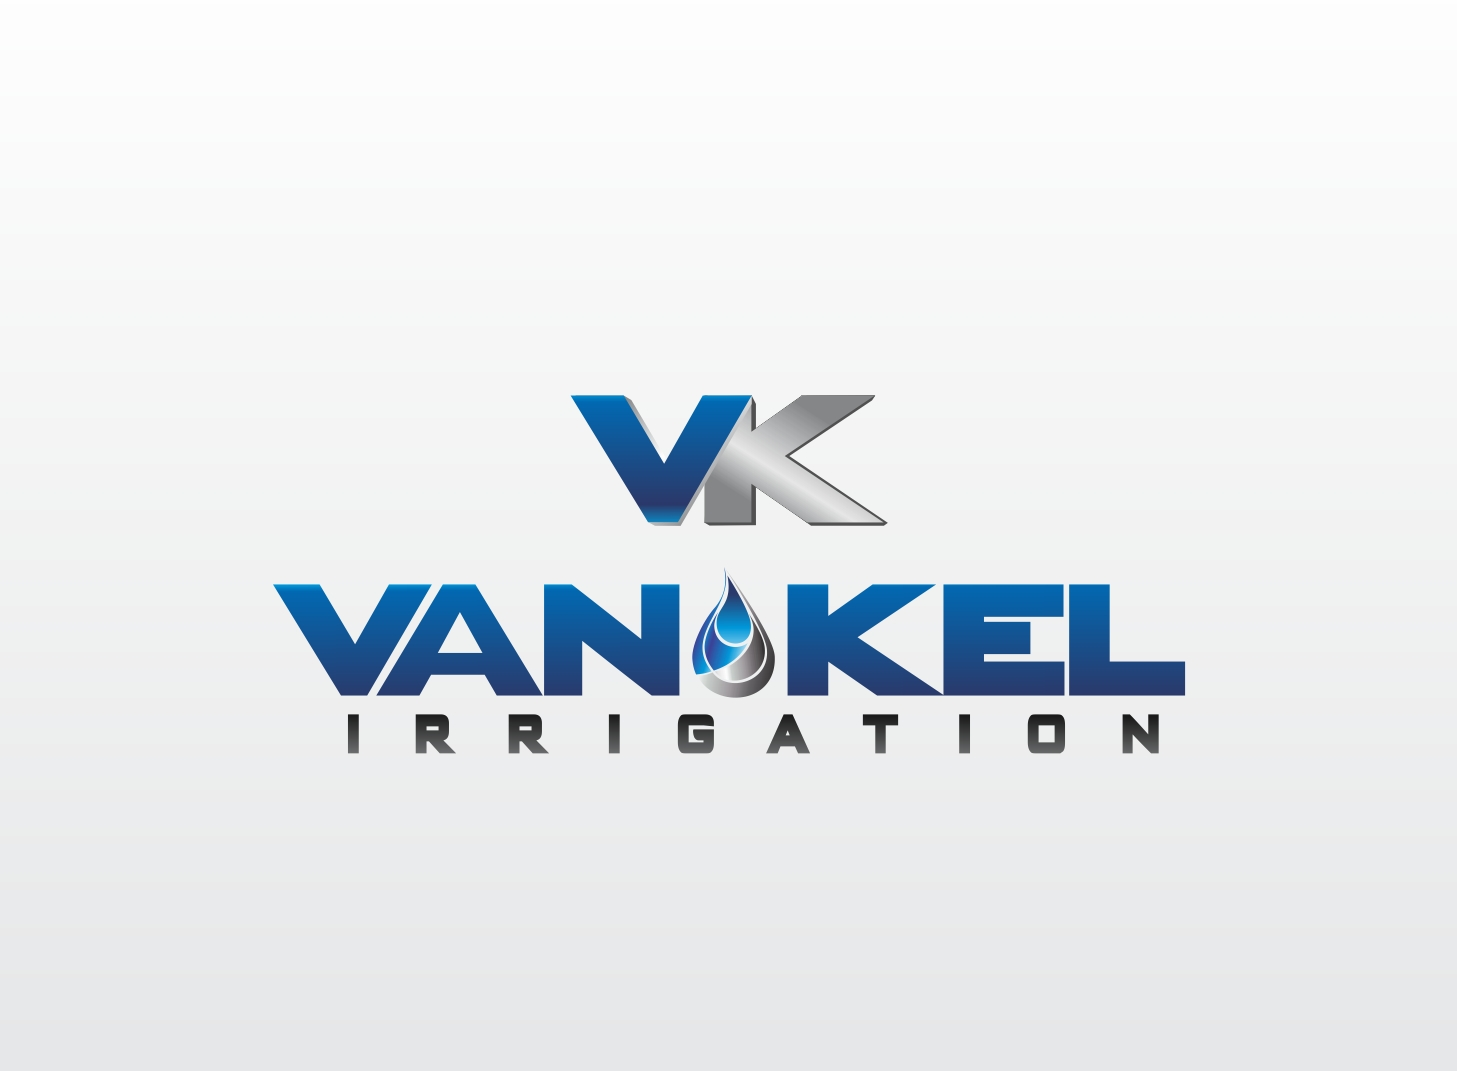 Logo Design by Zdravko Krulj - Entry No. 287 in the Logo Design Contest Van-Kel Irrigation Logo Design.